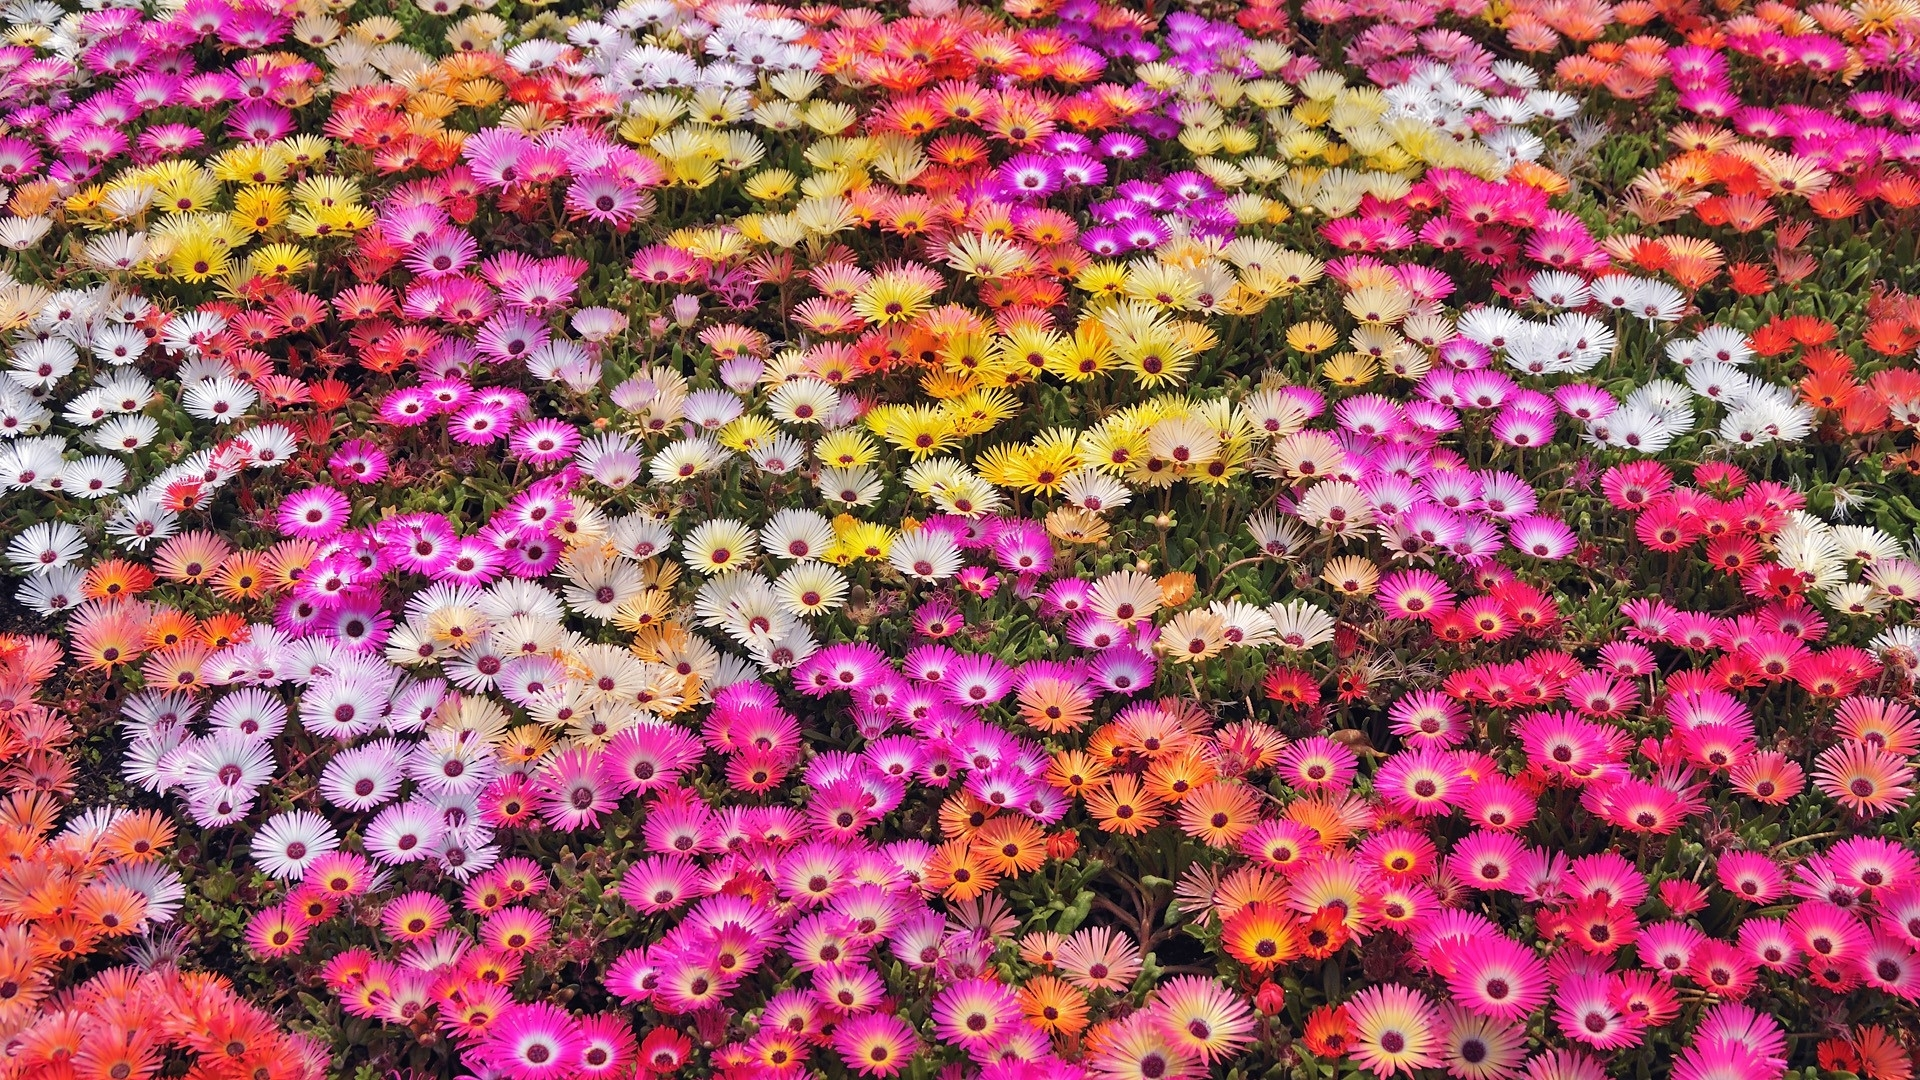 Nature flowers garden petals colors abstract plants - Plants with blue flowers a splash of colors in the garden ...